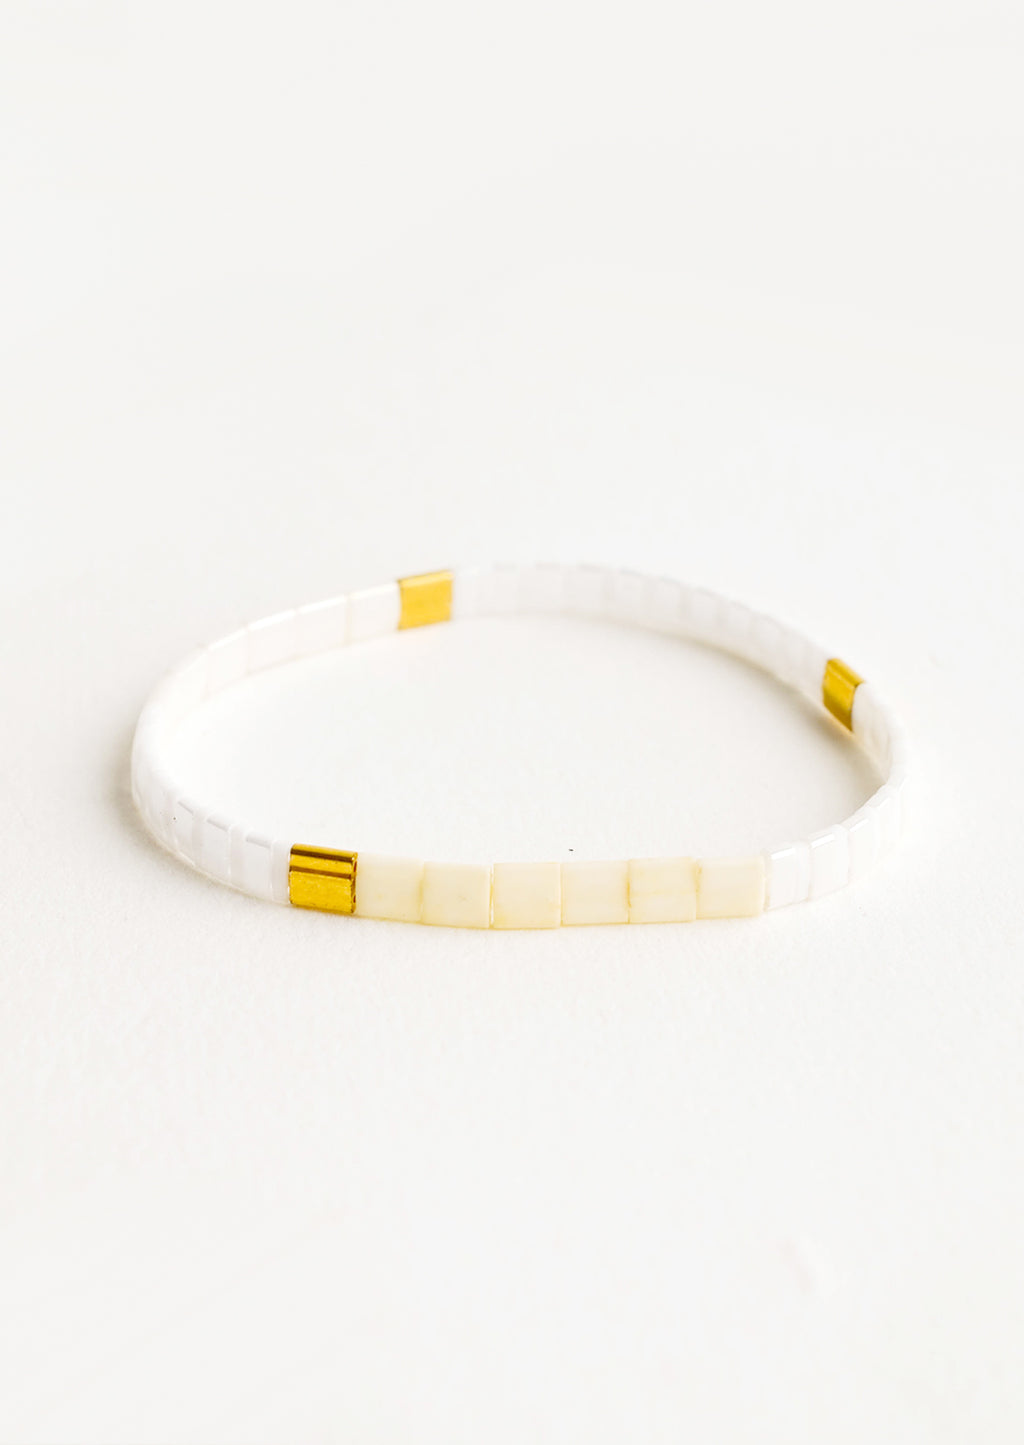 Pearl / Nude Multi: Bracelet featuring flat white beads interspersed with flat gold bead on an elastic cord.